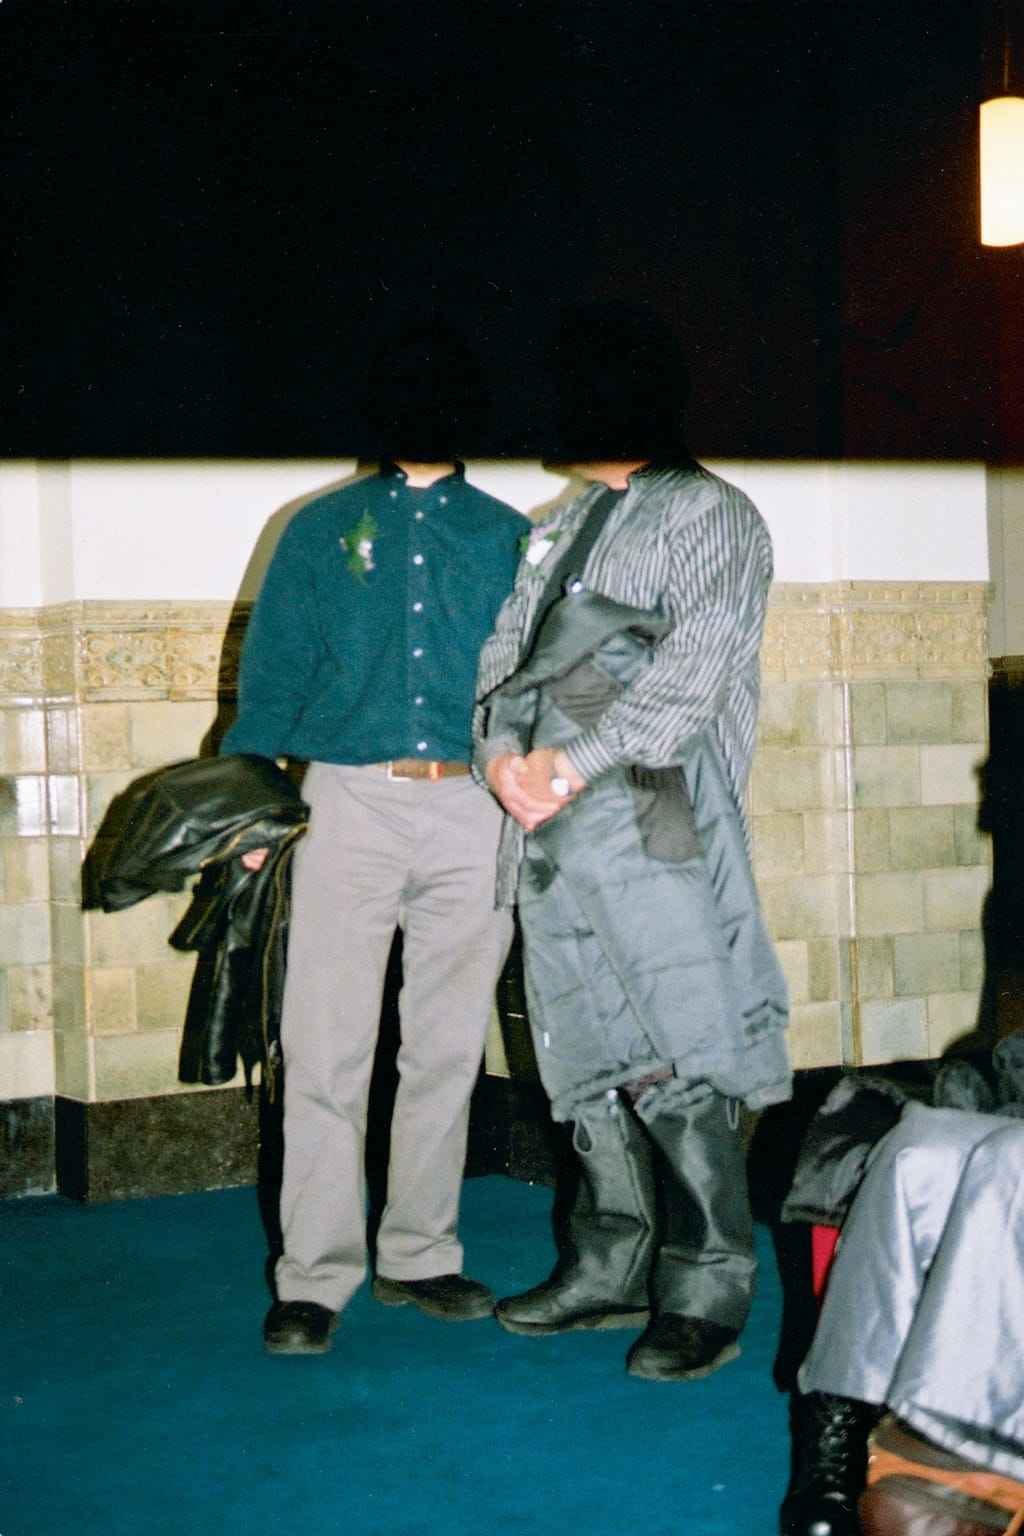 Two people posing for a photo in front of a brick wall. Due to the end of the film being reached the top of the photo is cut off and black.